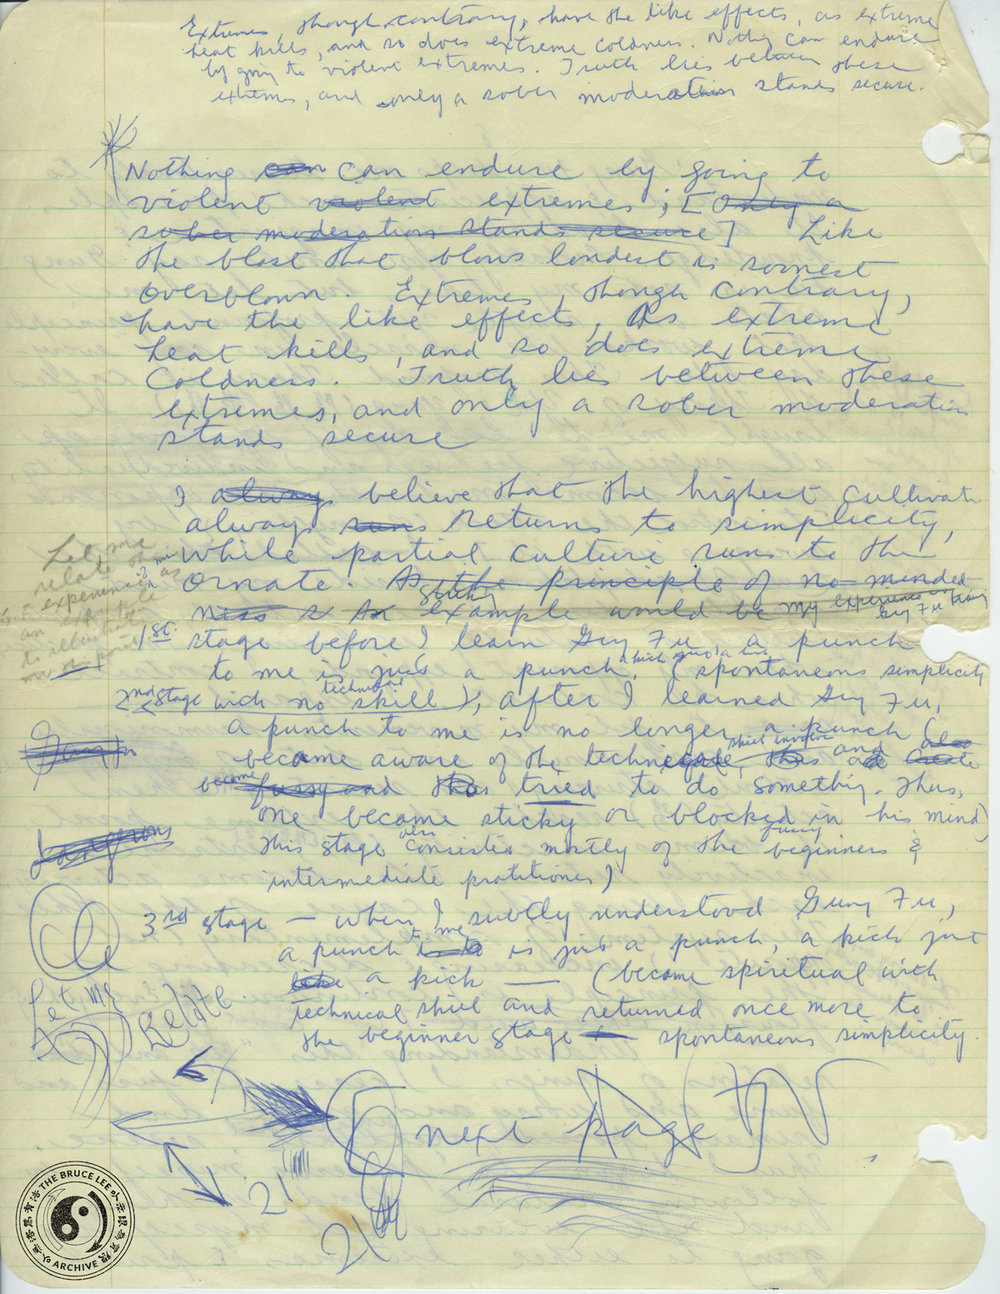 Letter-to-Pearl-draft-pg.9-archive.jpg